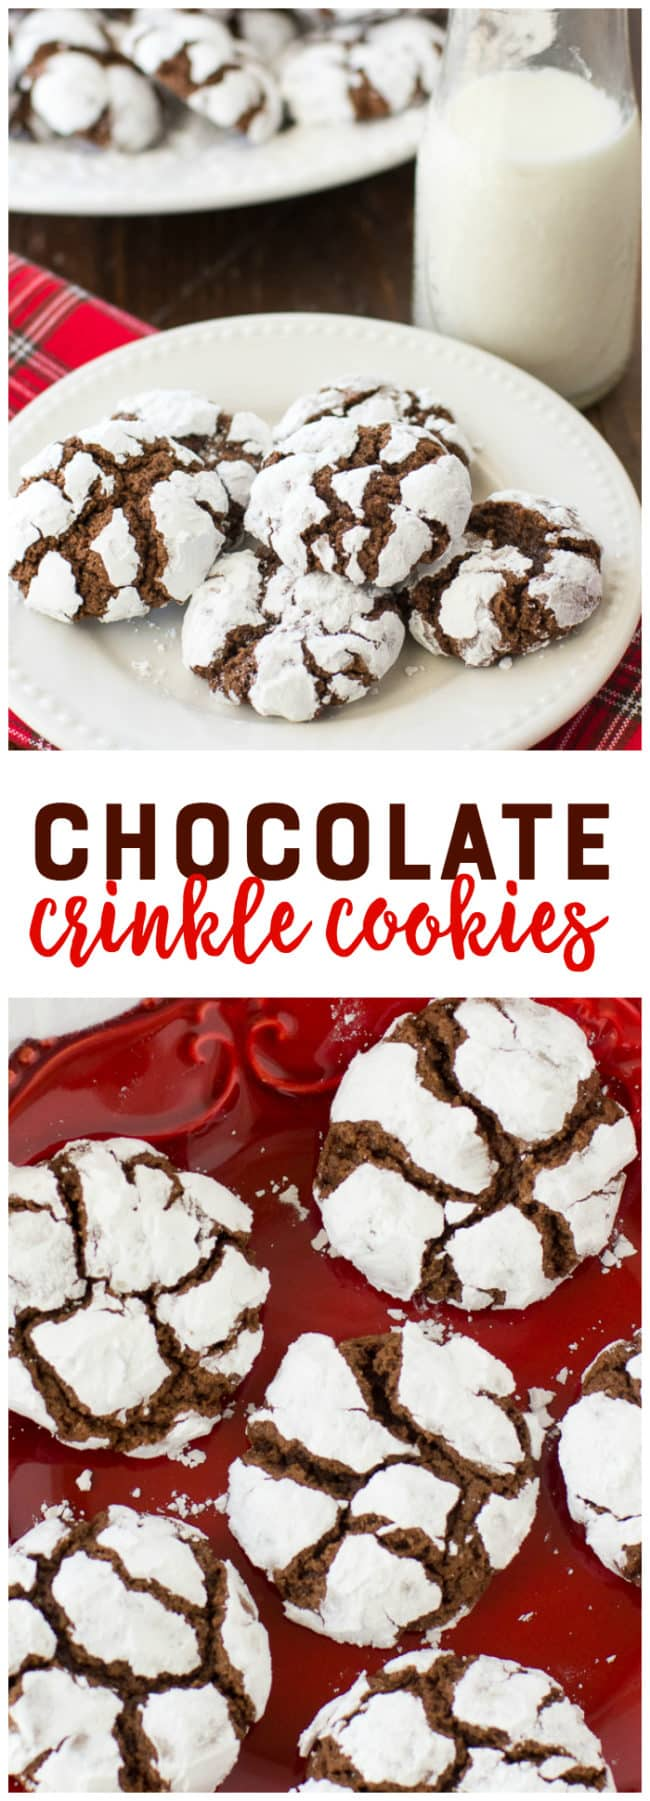 Chocolate Crinkle Cookies - These easy and delicious chocolate crinkles are a classic Christmas cookie recipe that you'll love year after year!